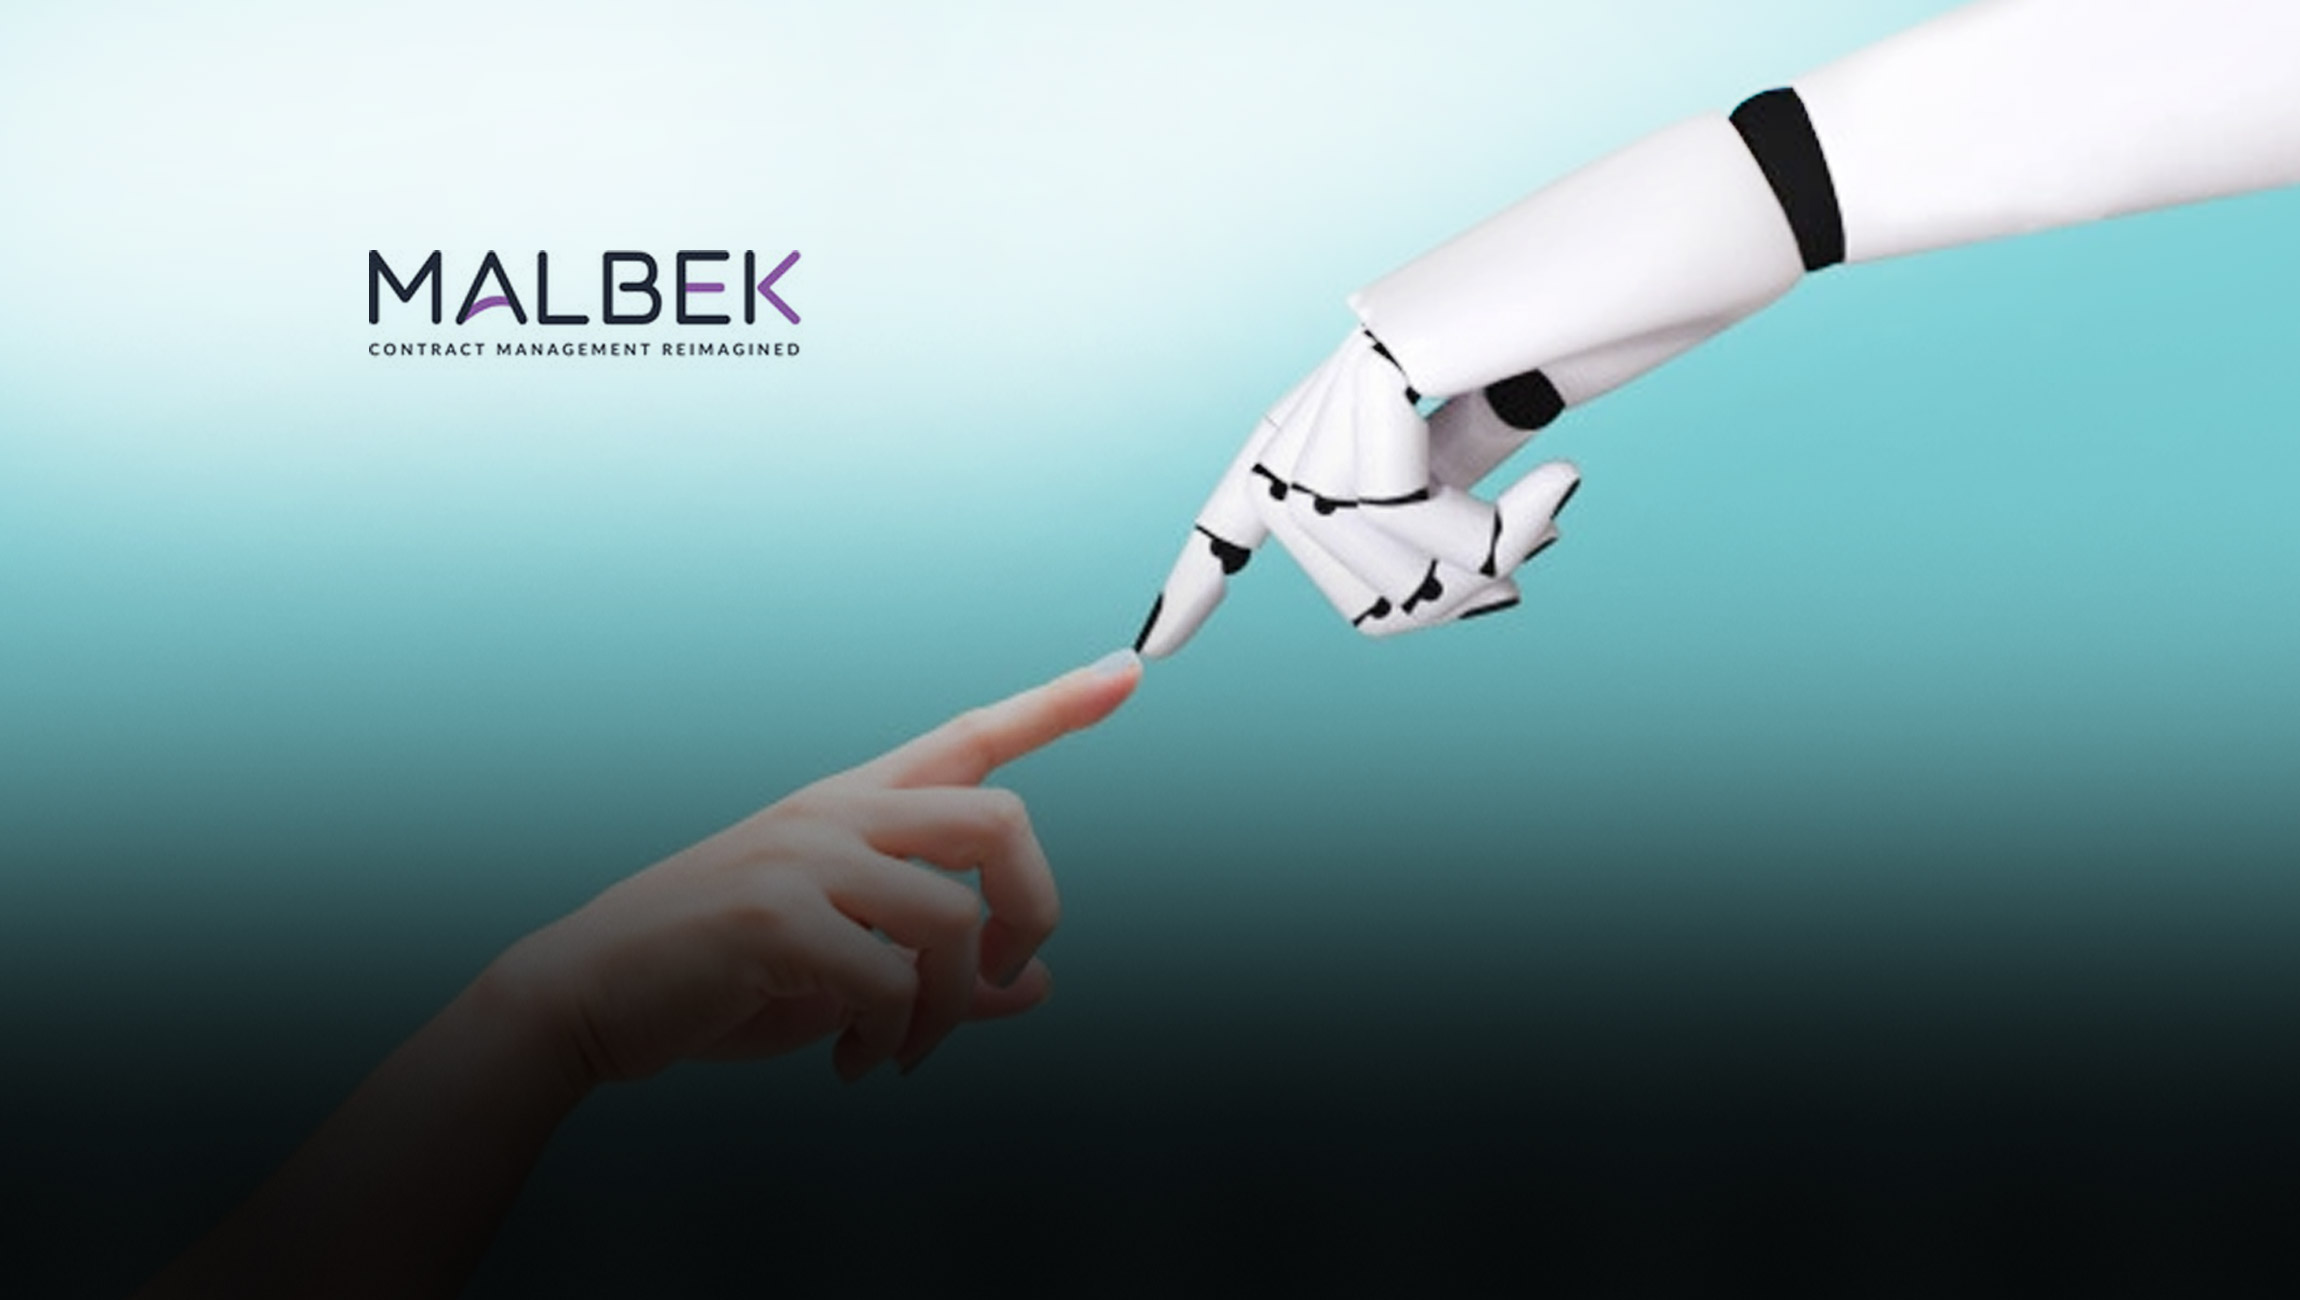 Malbek Extends Contract Capabilities with Focus on AI and Integrations